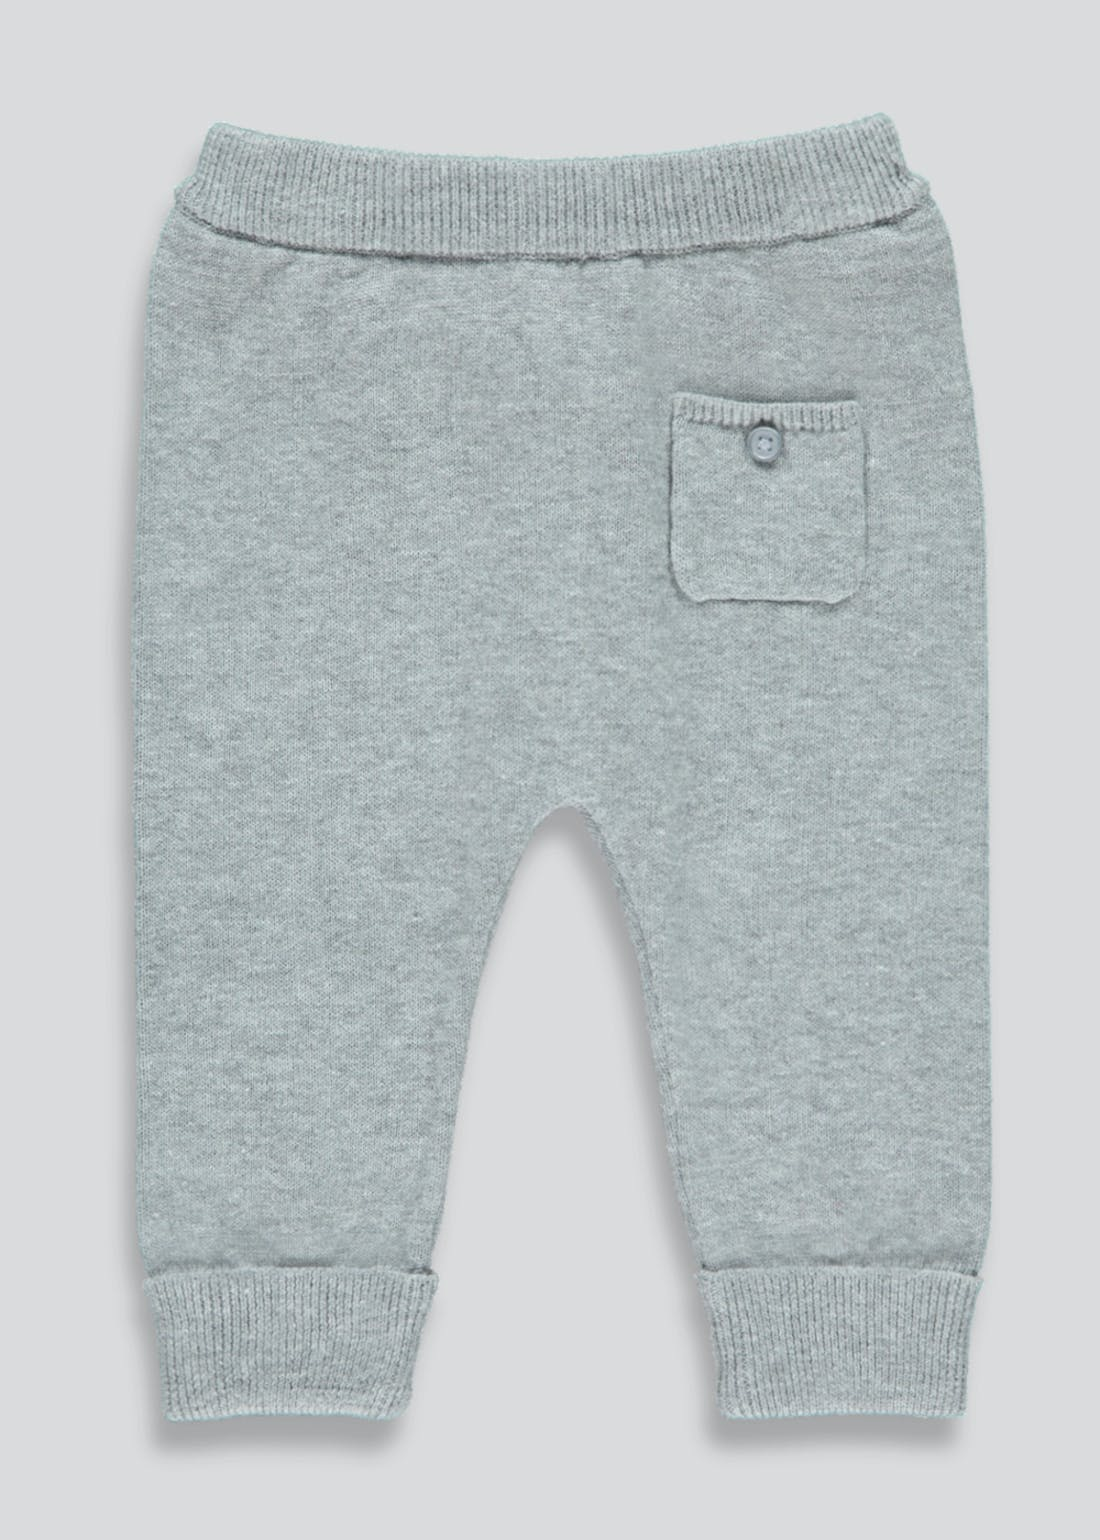 Unisex Knitted Joggers (Tiny Baby-23mths)